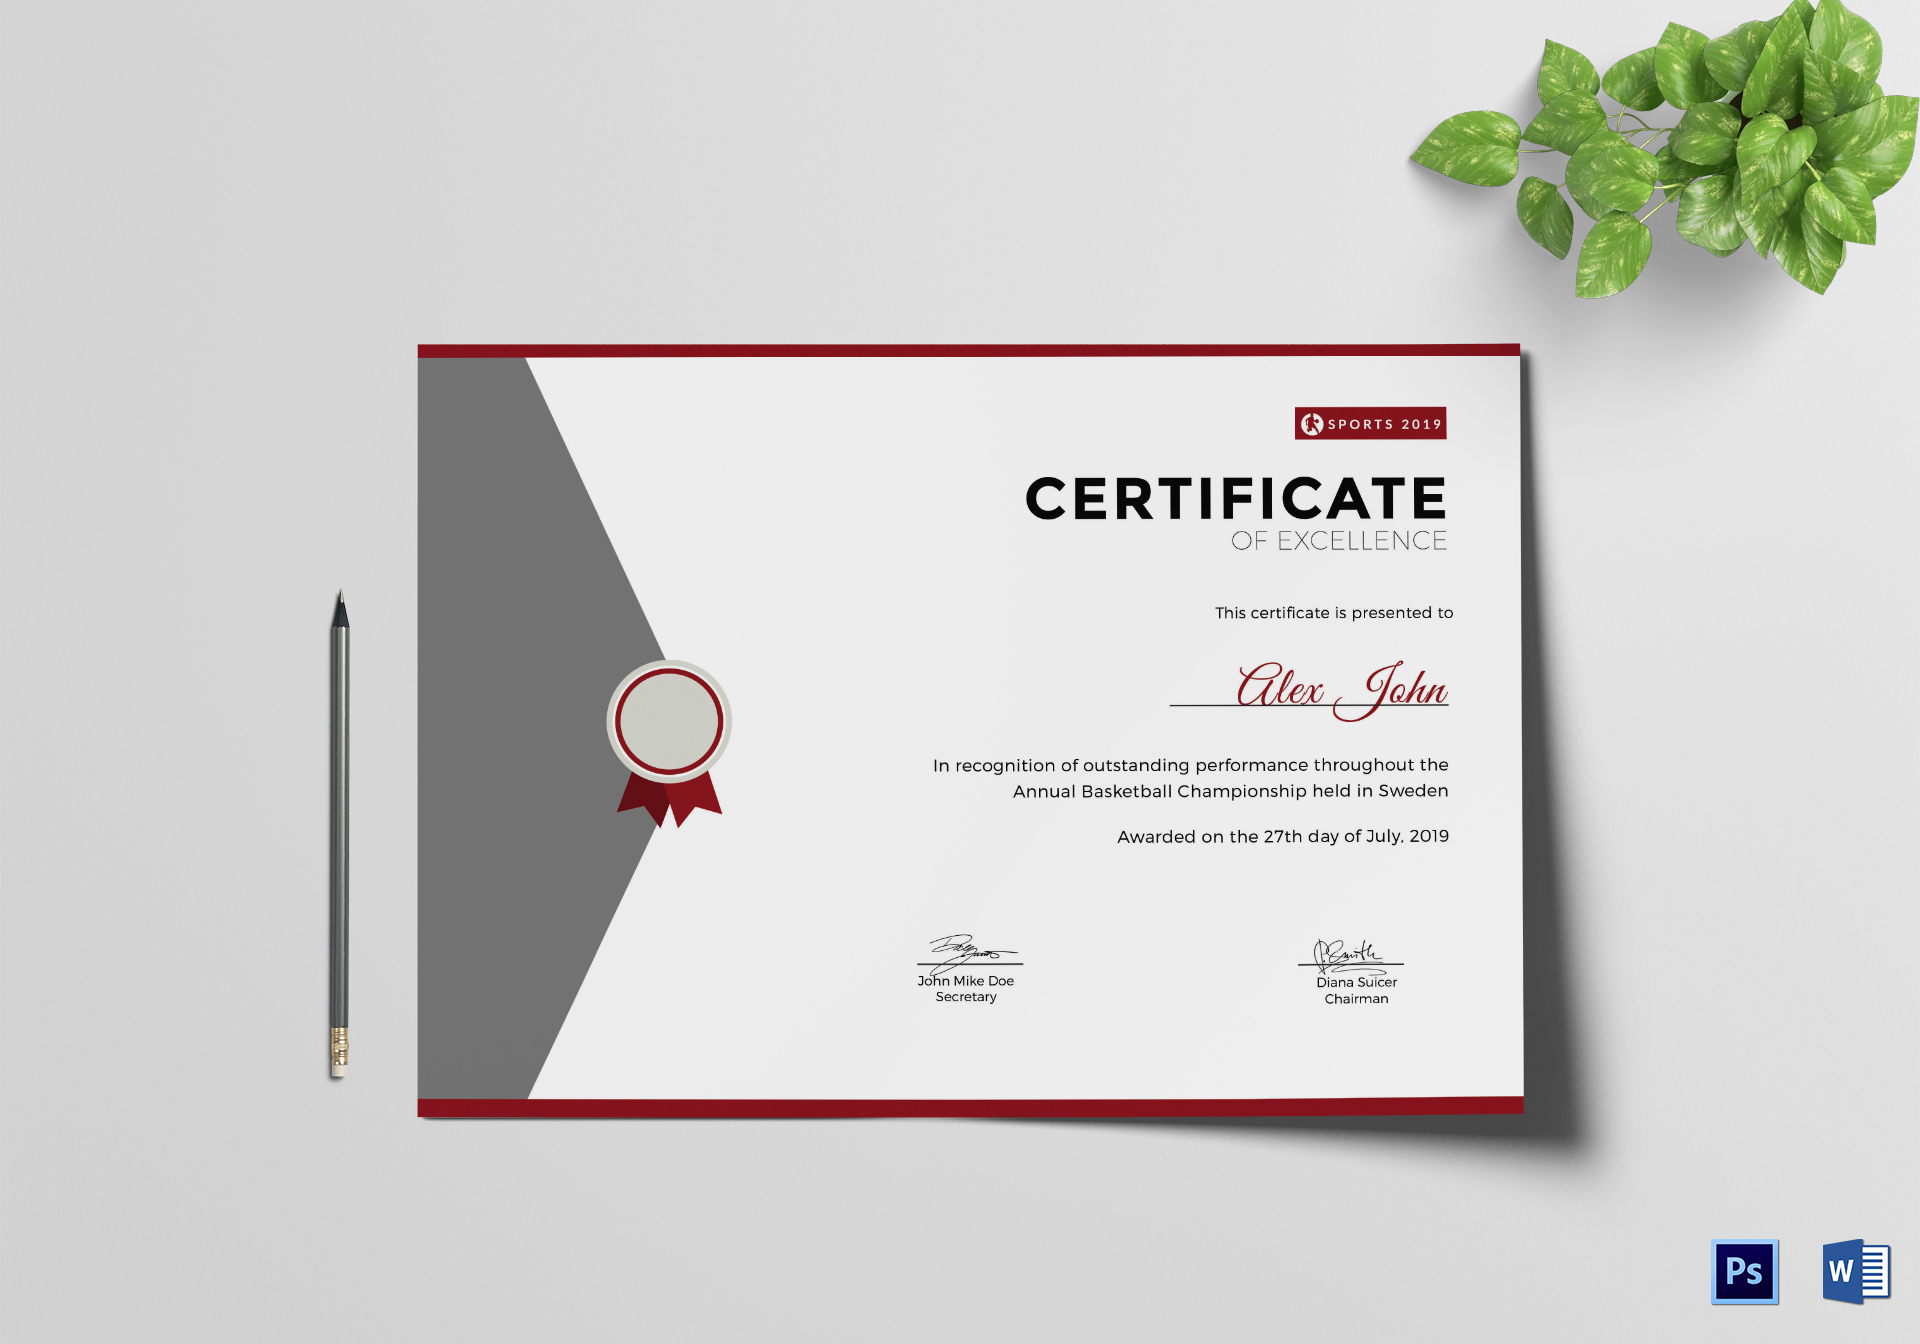 Prize Excellence Certificate Design Template In Psd Word throughout Awesome Certificate Of Excellence Template Word